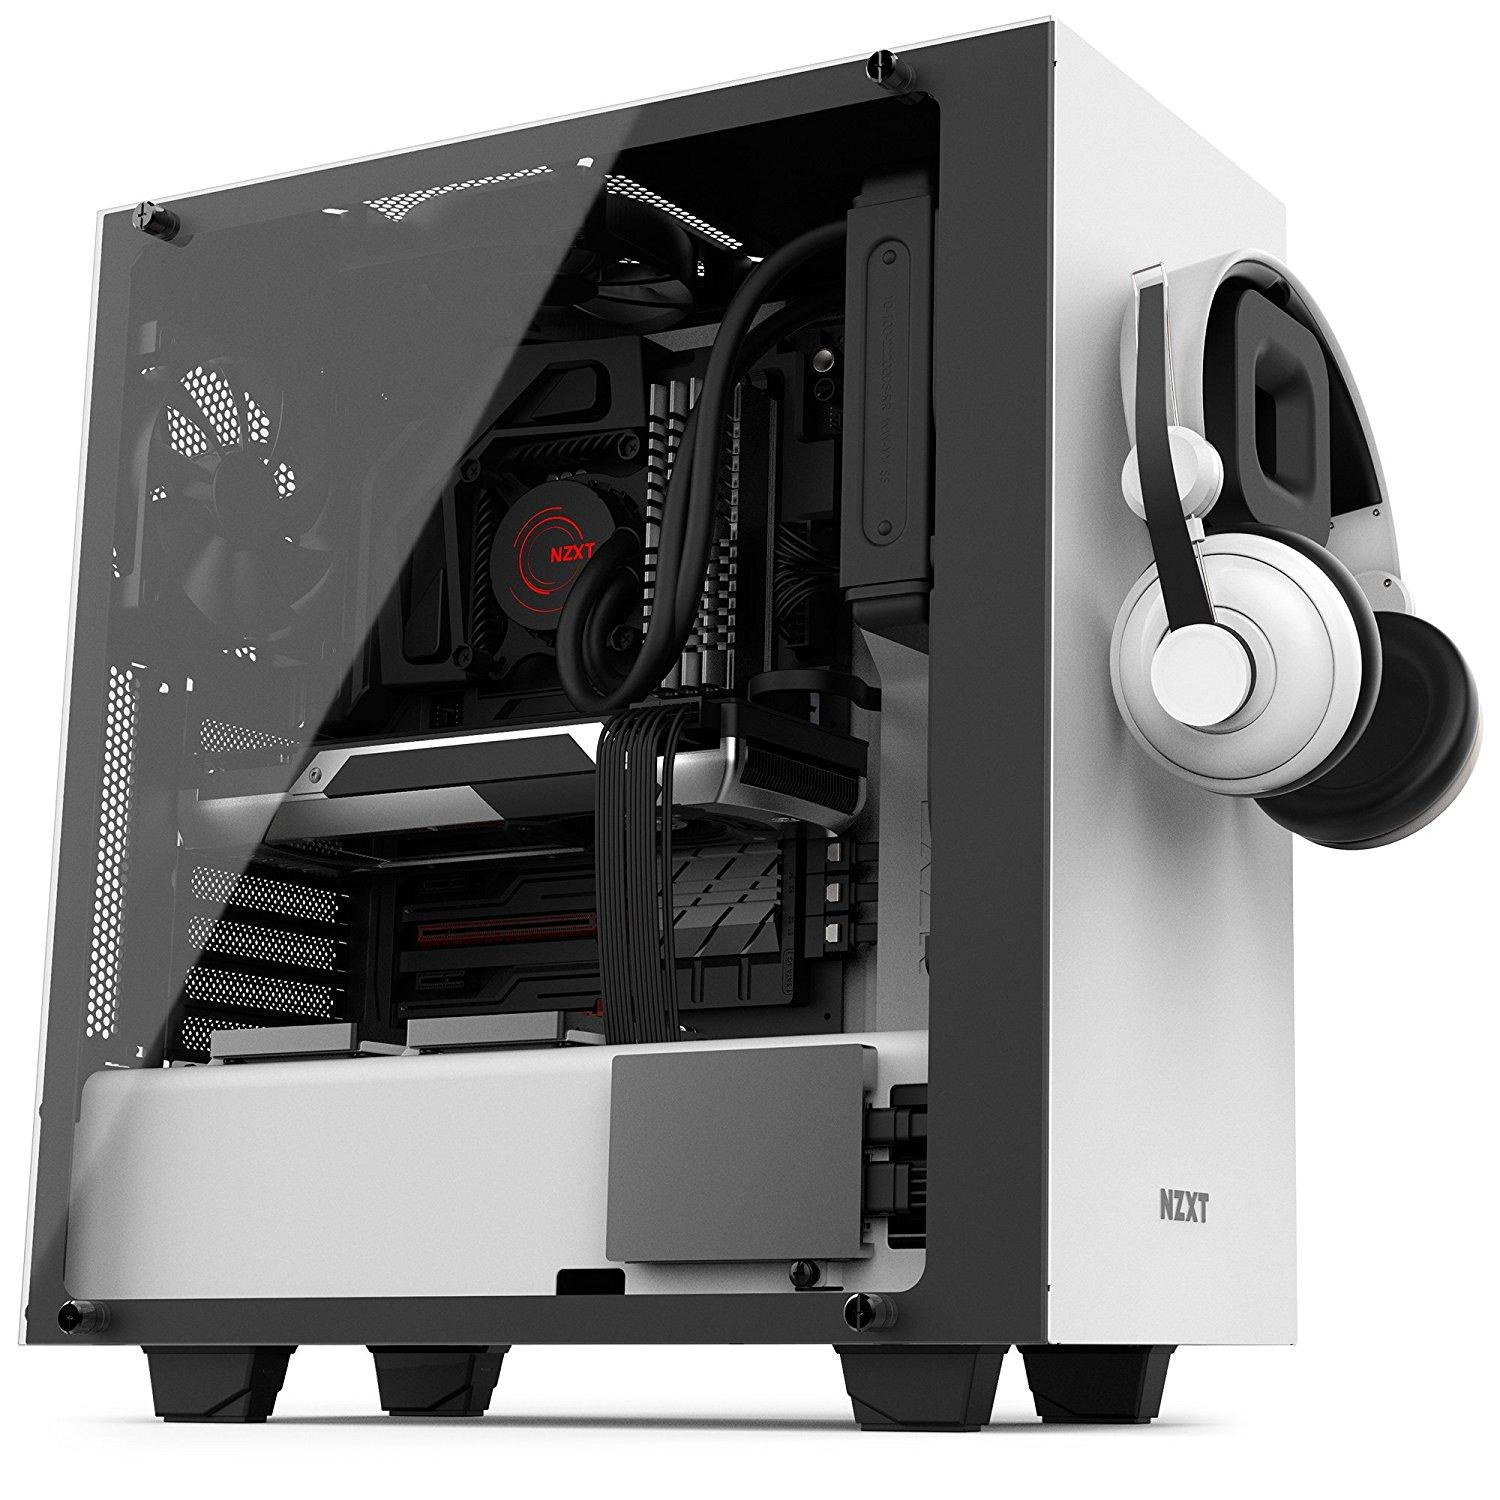 Поставка за слушалки NZXT Puck Black BA-PUCKR-B1-4